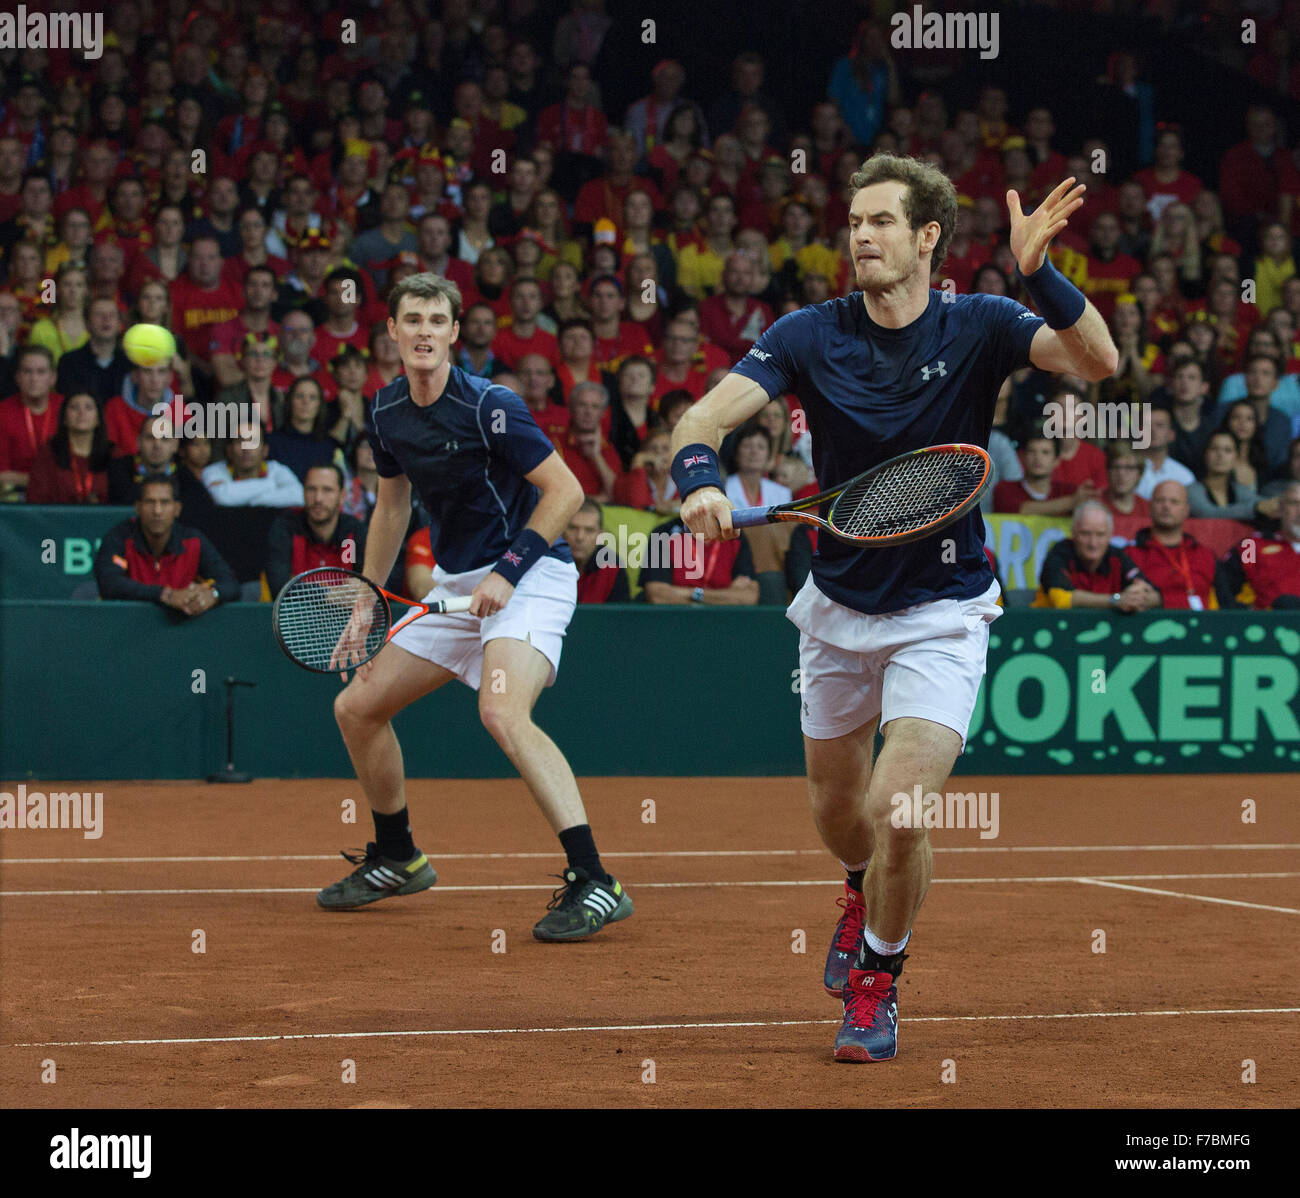 Gent, Belgium, November 28, 2015, Davis Cup Final, Belgium-Great Britain, day two, doubles match, Andy Murray (R) - Stock Image